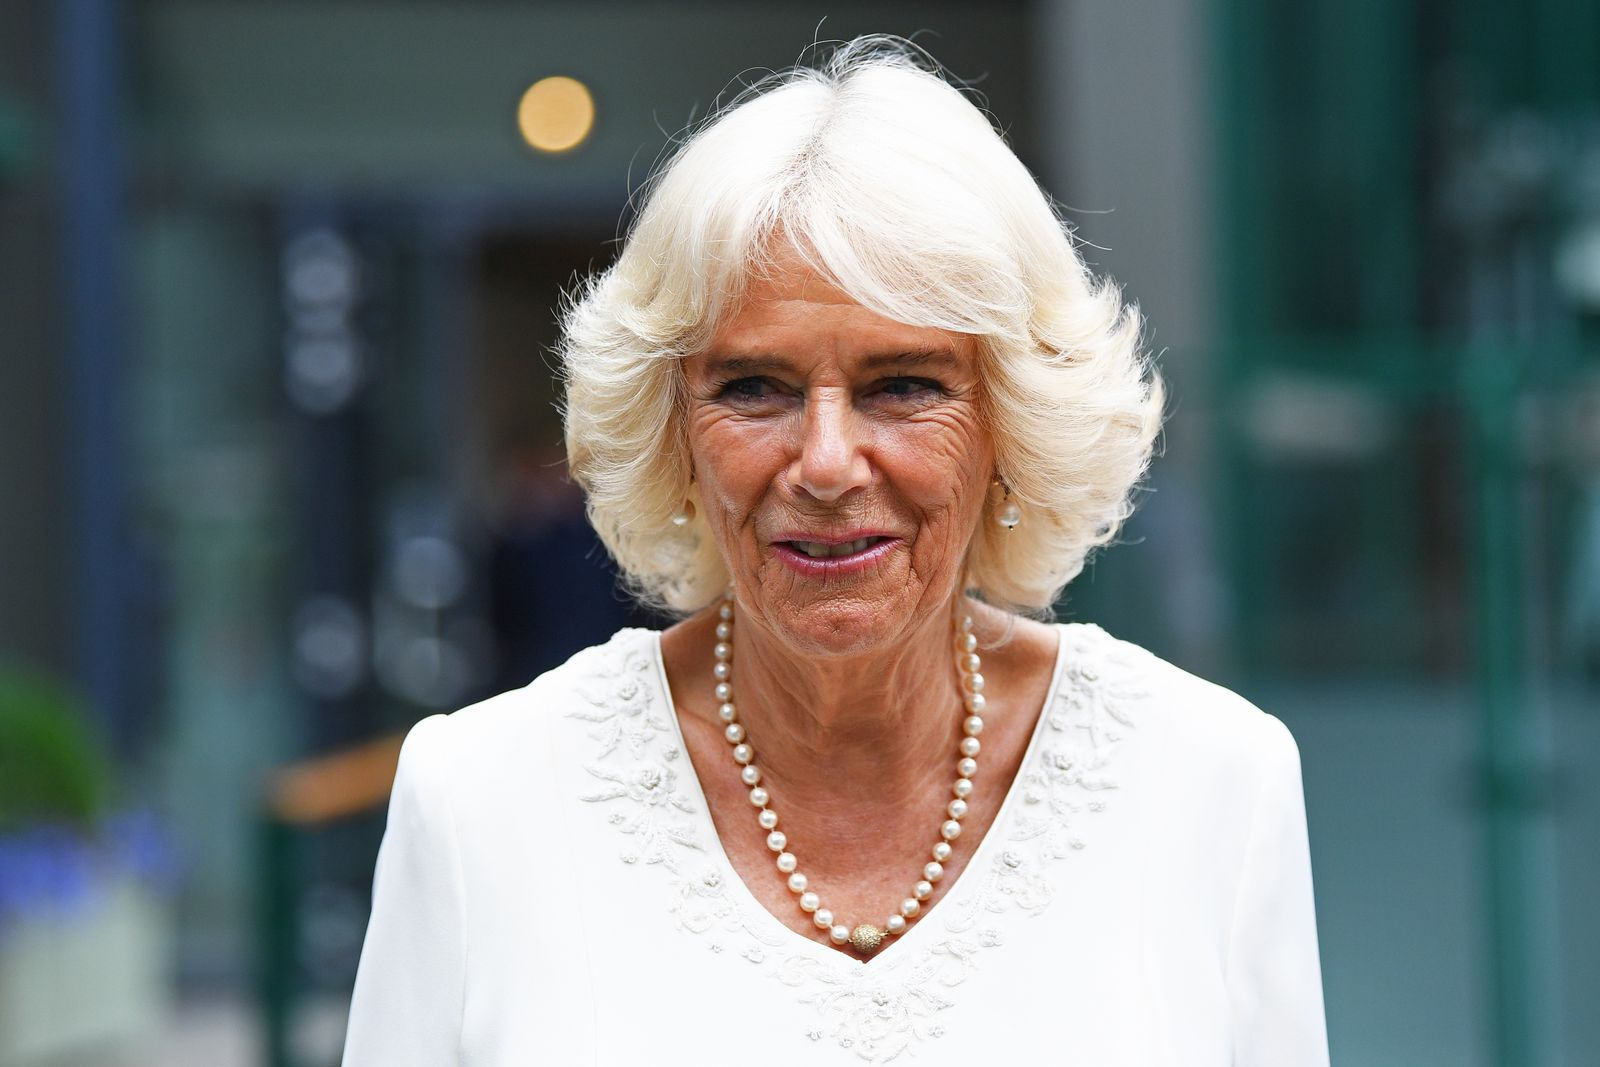 Camilla, Duchess of Cornwall at the All England Lawn Tennis and Croquet Club on July 10, 2019. | Getty Images